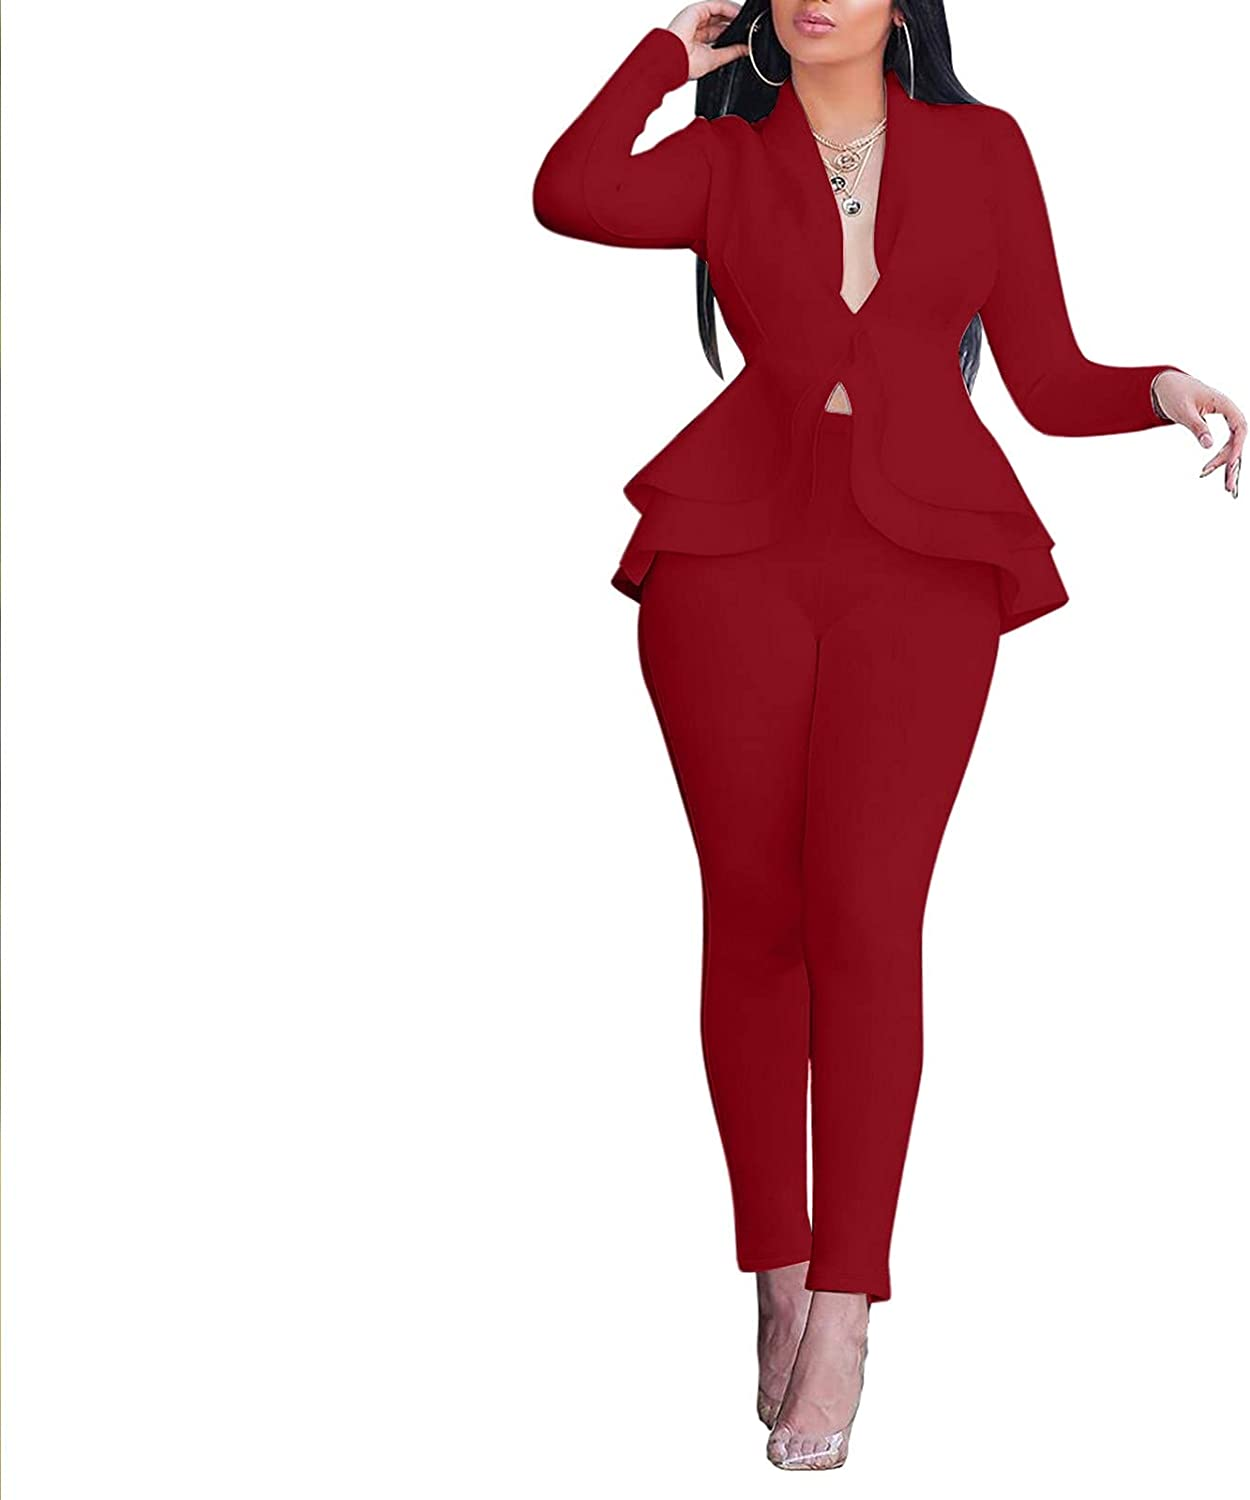 Aniywn 2 Piece Outfits for Women Sexy Long Sleeve Solid Blazer with Pants Casual Elegant Business Suit Sets